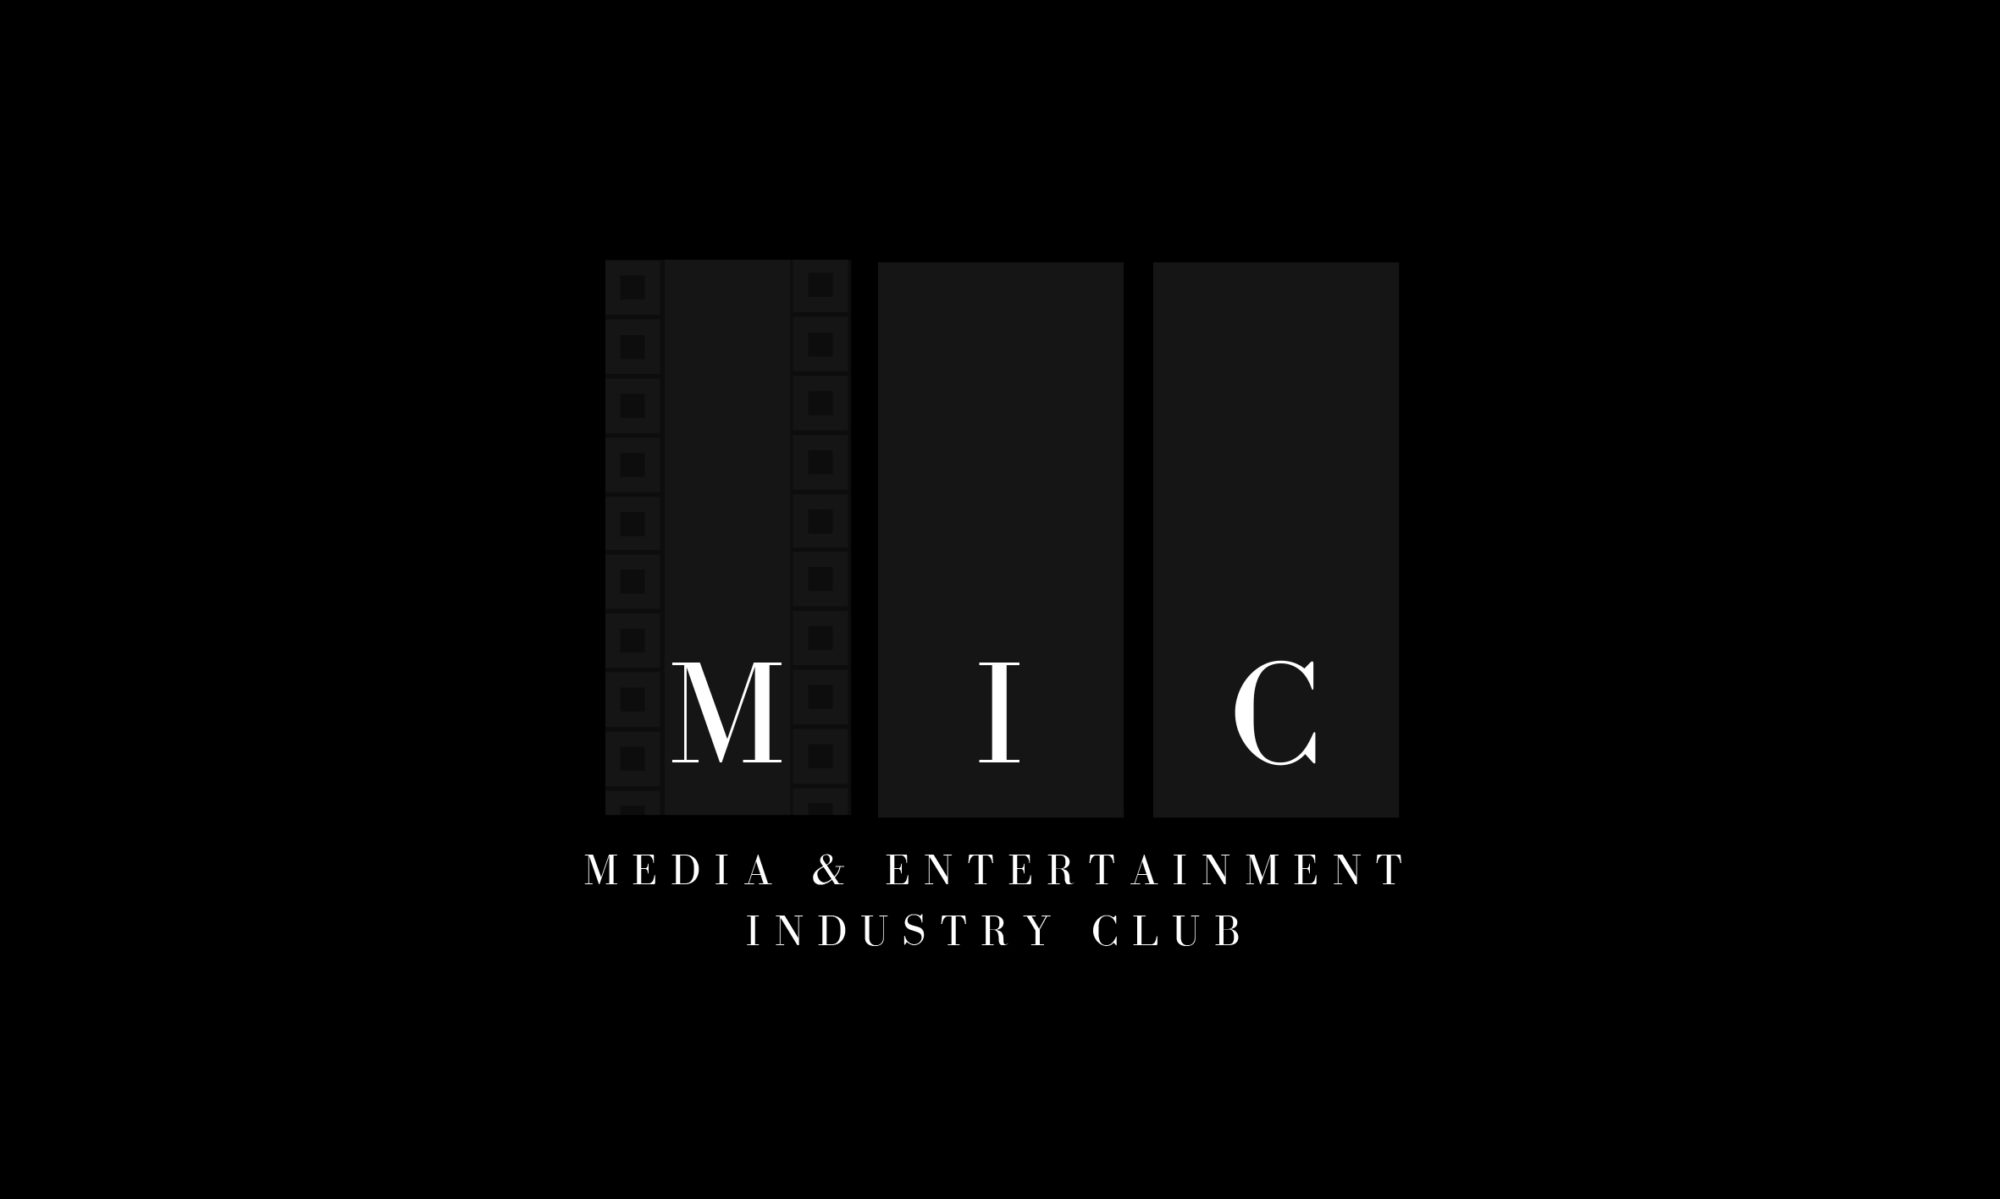 Media and Entertainment Industry Club